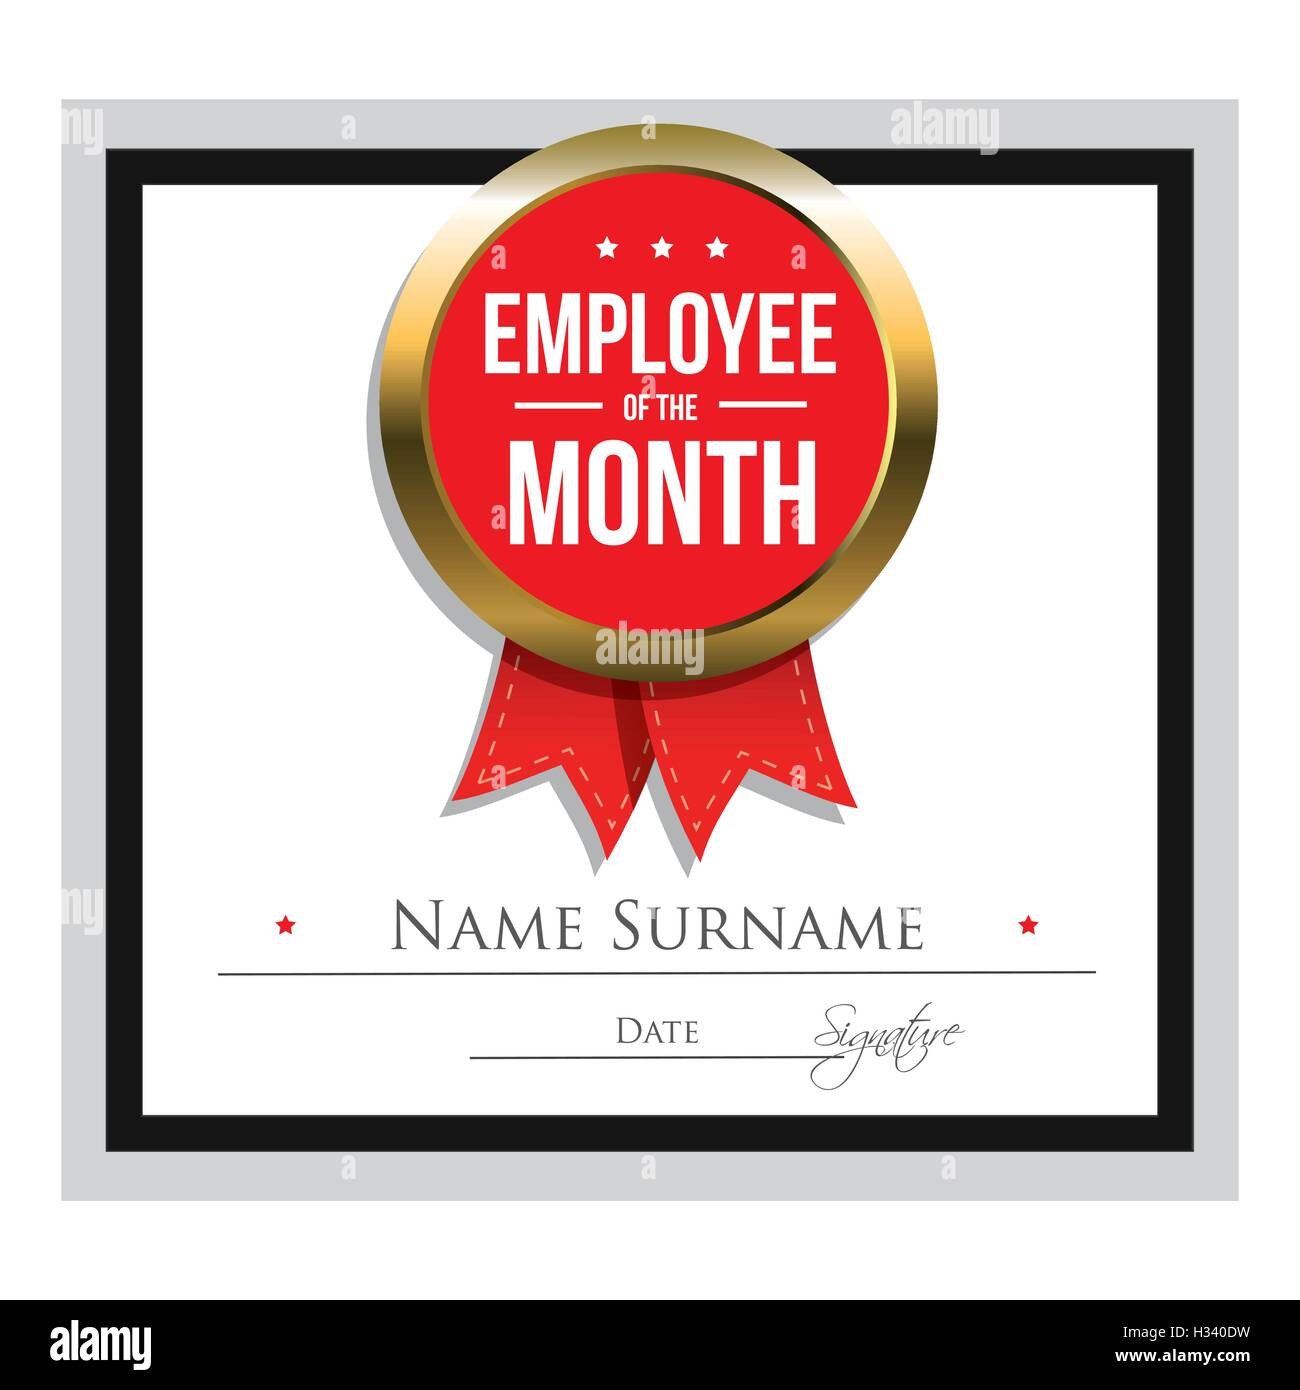 Employee of the month certificate template stock vector art employee of the month certificate template pronofoot35fo Image collections